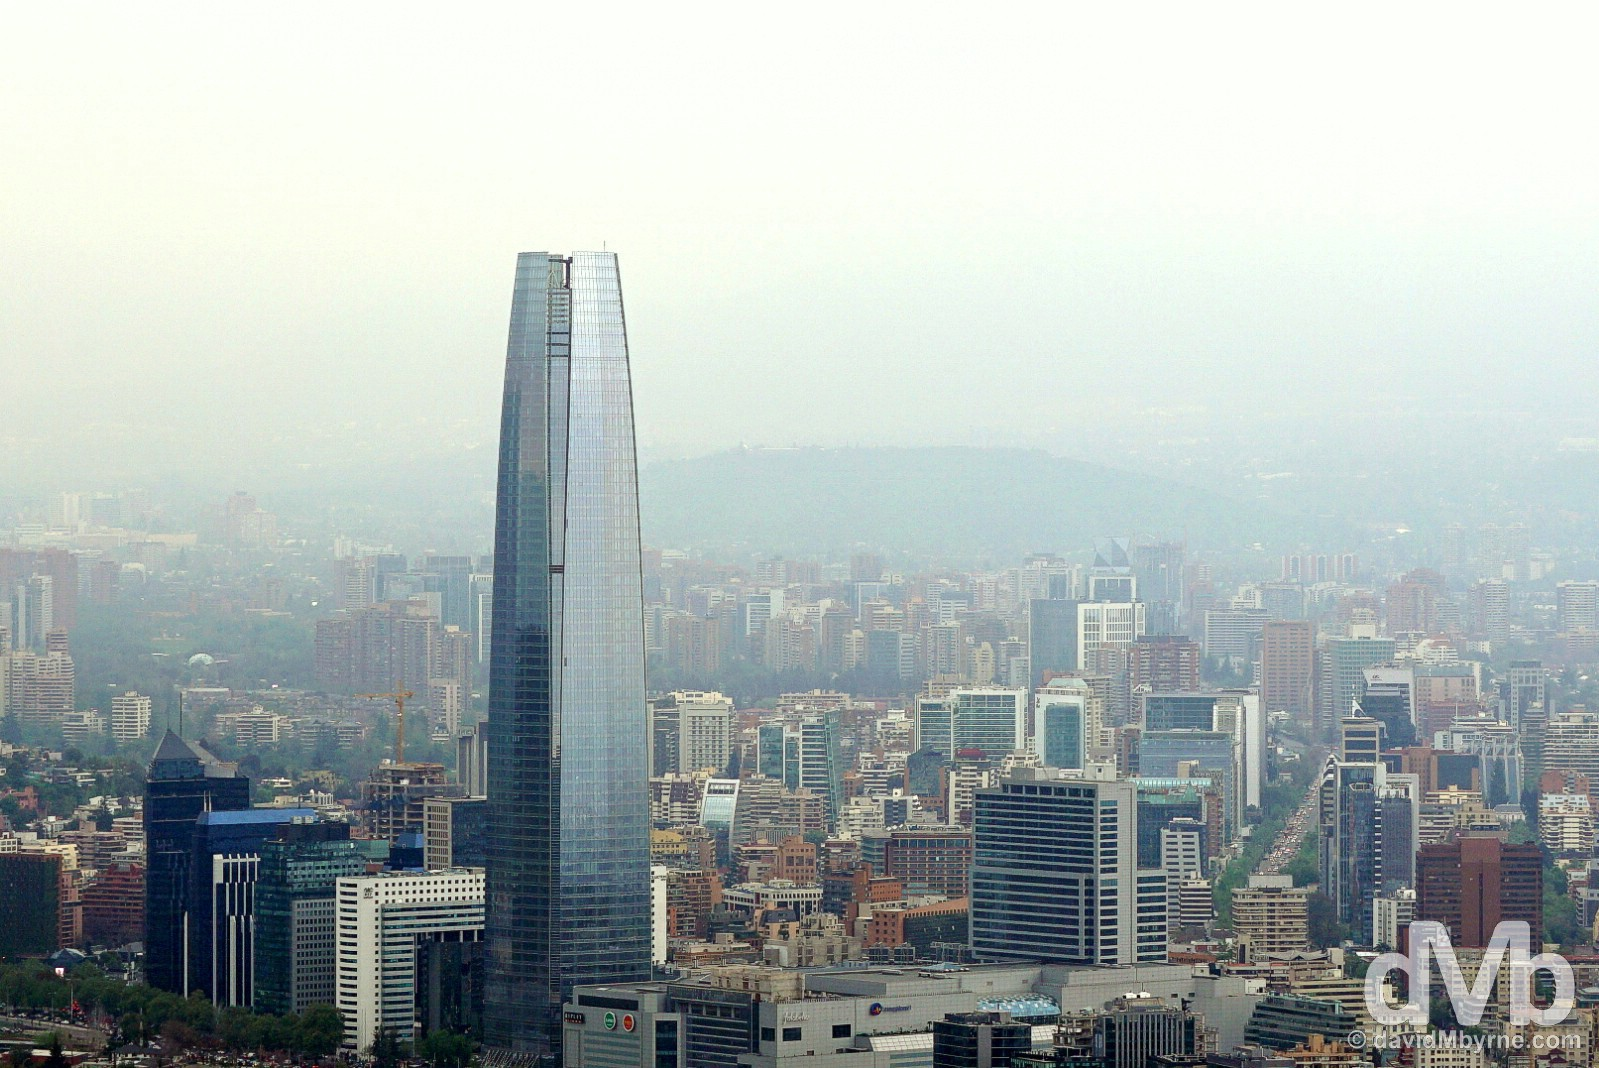 The Gran Torre Santiago, Latin America's tallest skyscraper, as seen from Cerro San Cristobal in Santiago Chile. October 6, 2015.